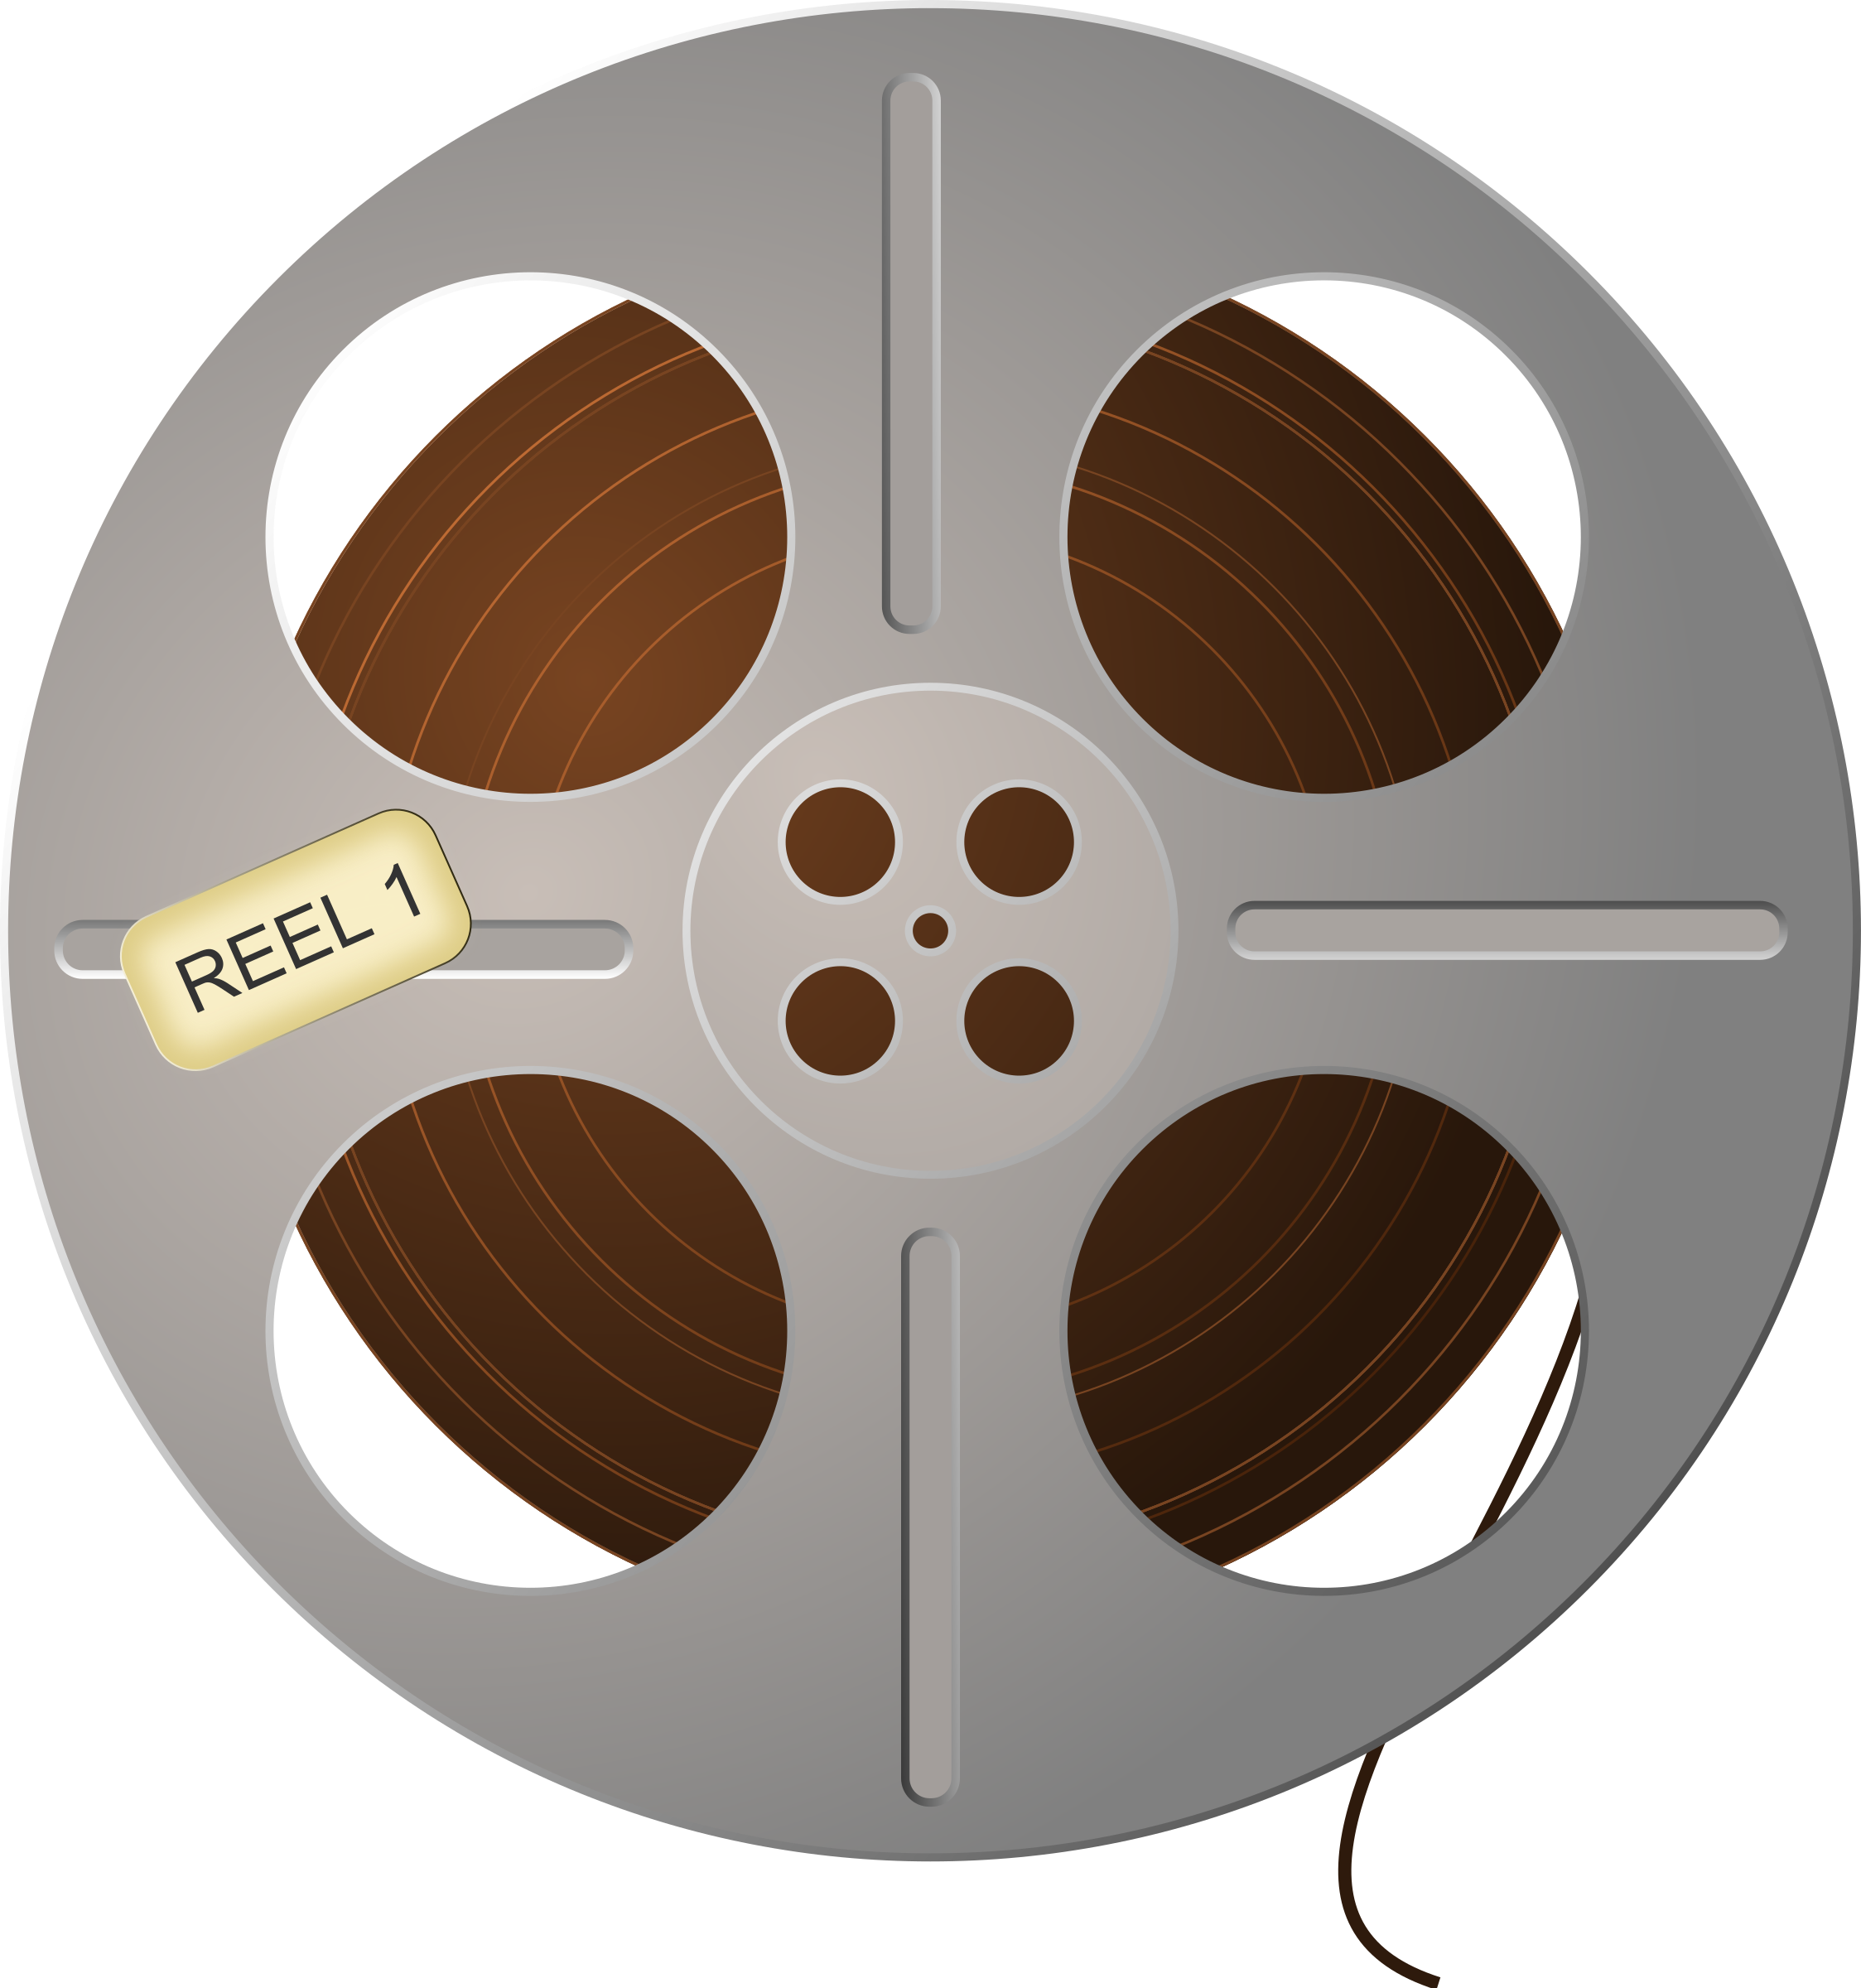 Film Tape Reel by studio_hades